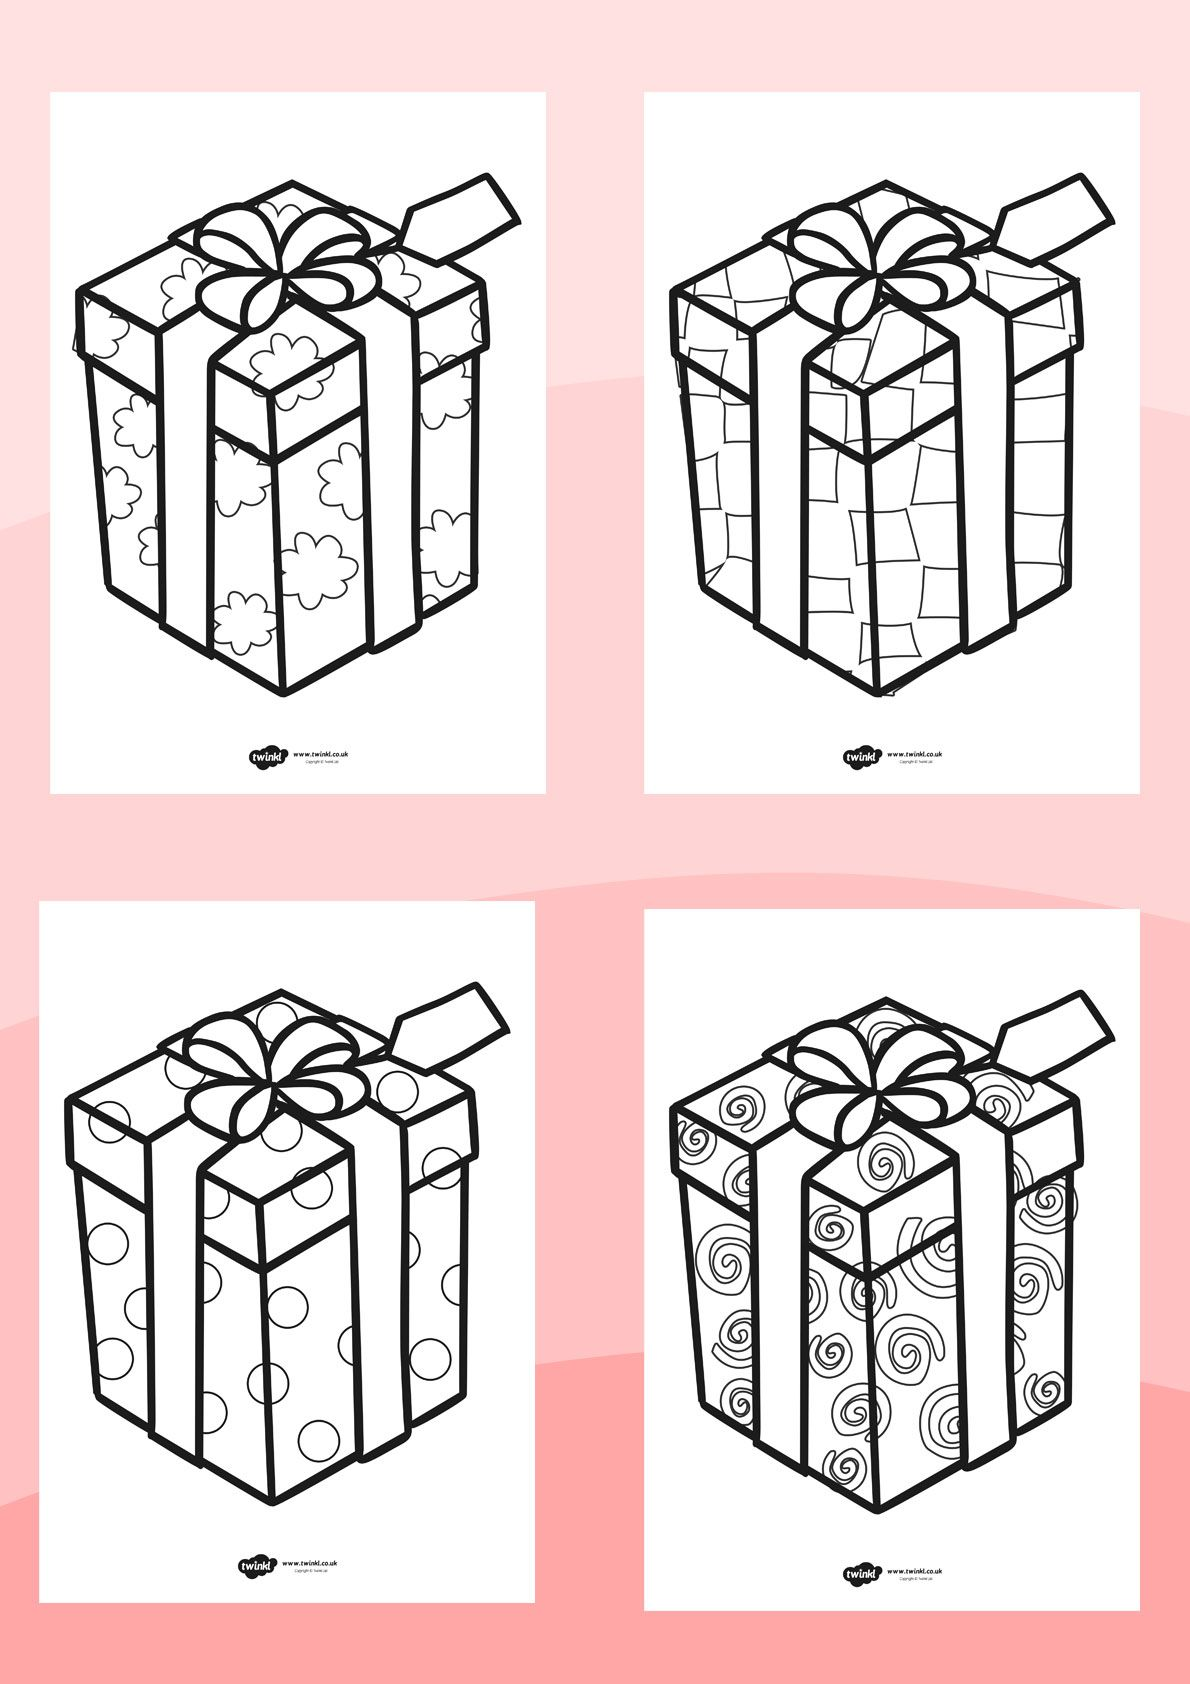 Twinkl Resources Patterned Presents Colouring Sheets Printable Resources For Primary Eyfs Ks1 And Sen Coloring Sheets Christmas Activities Presents